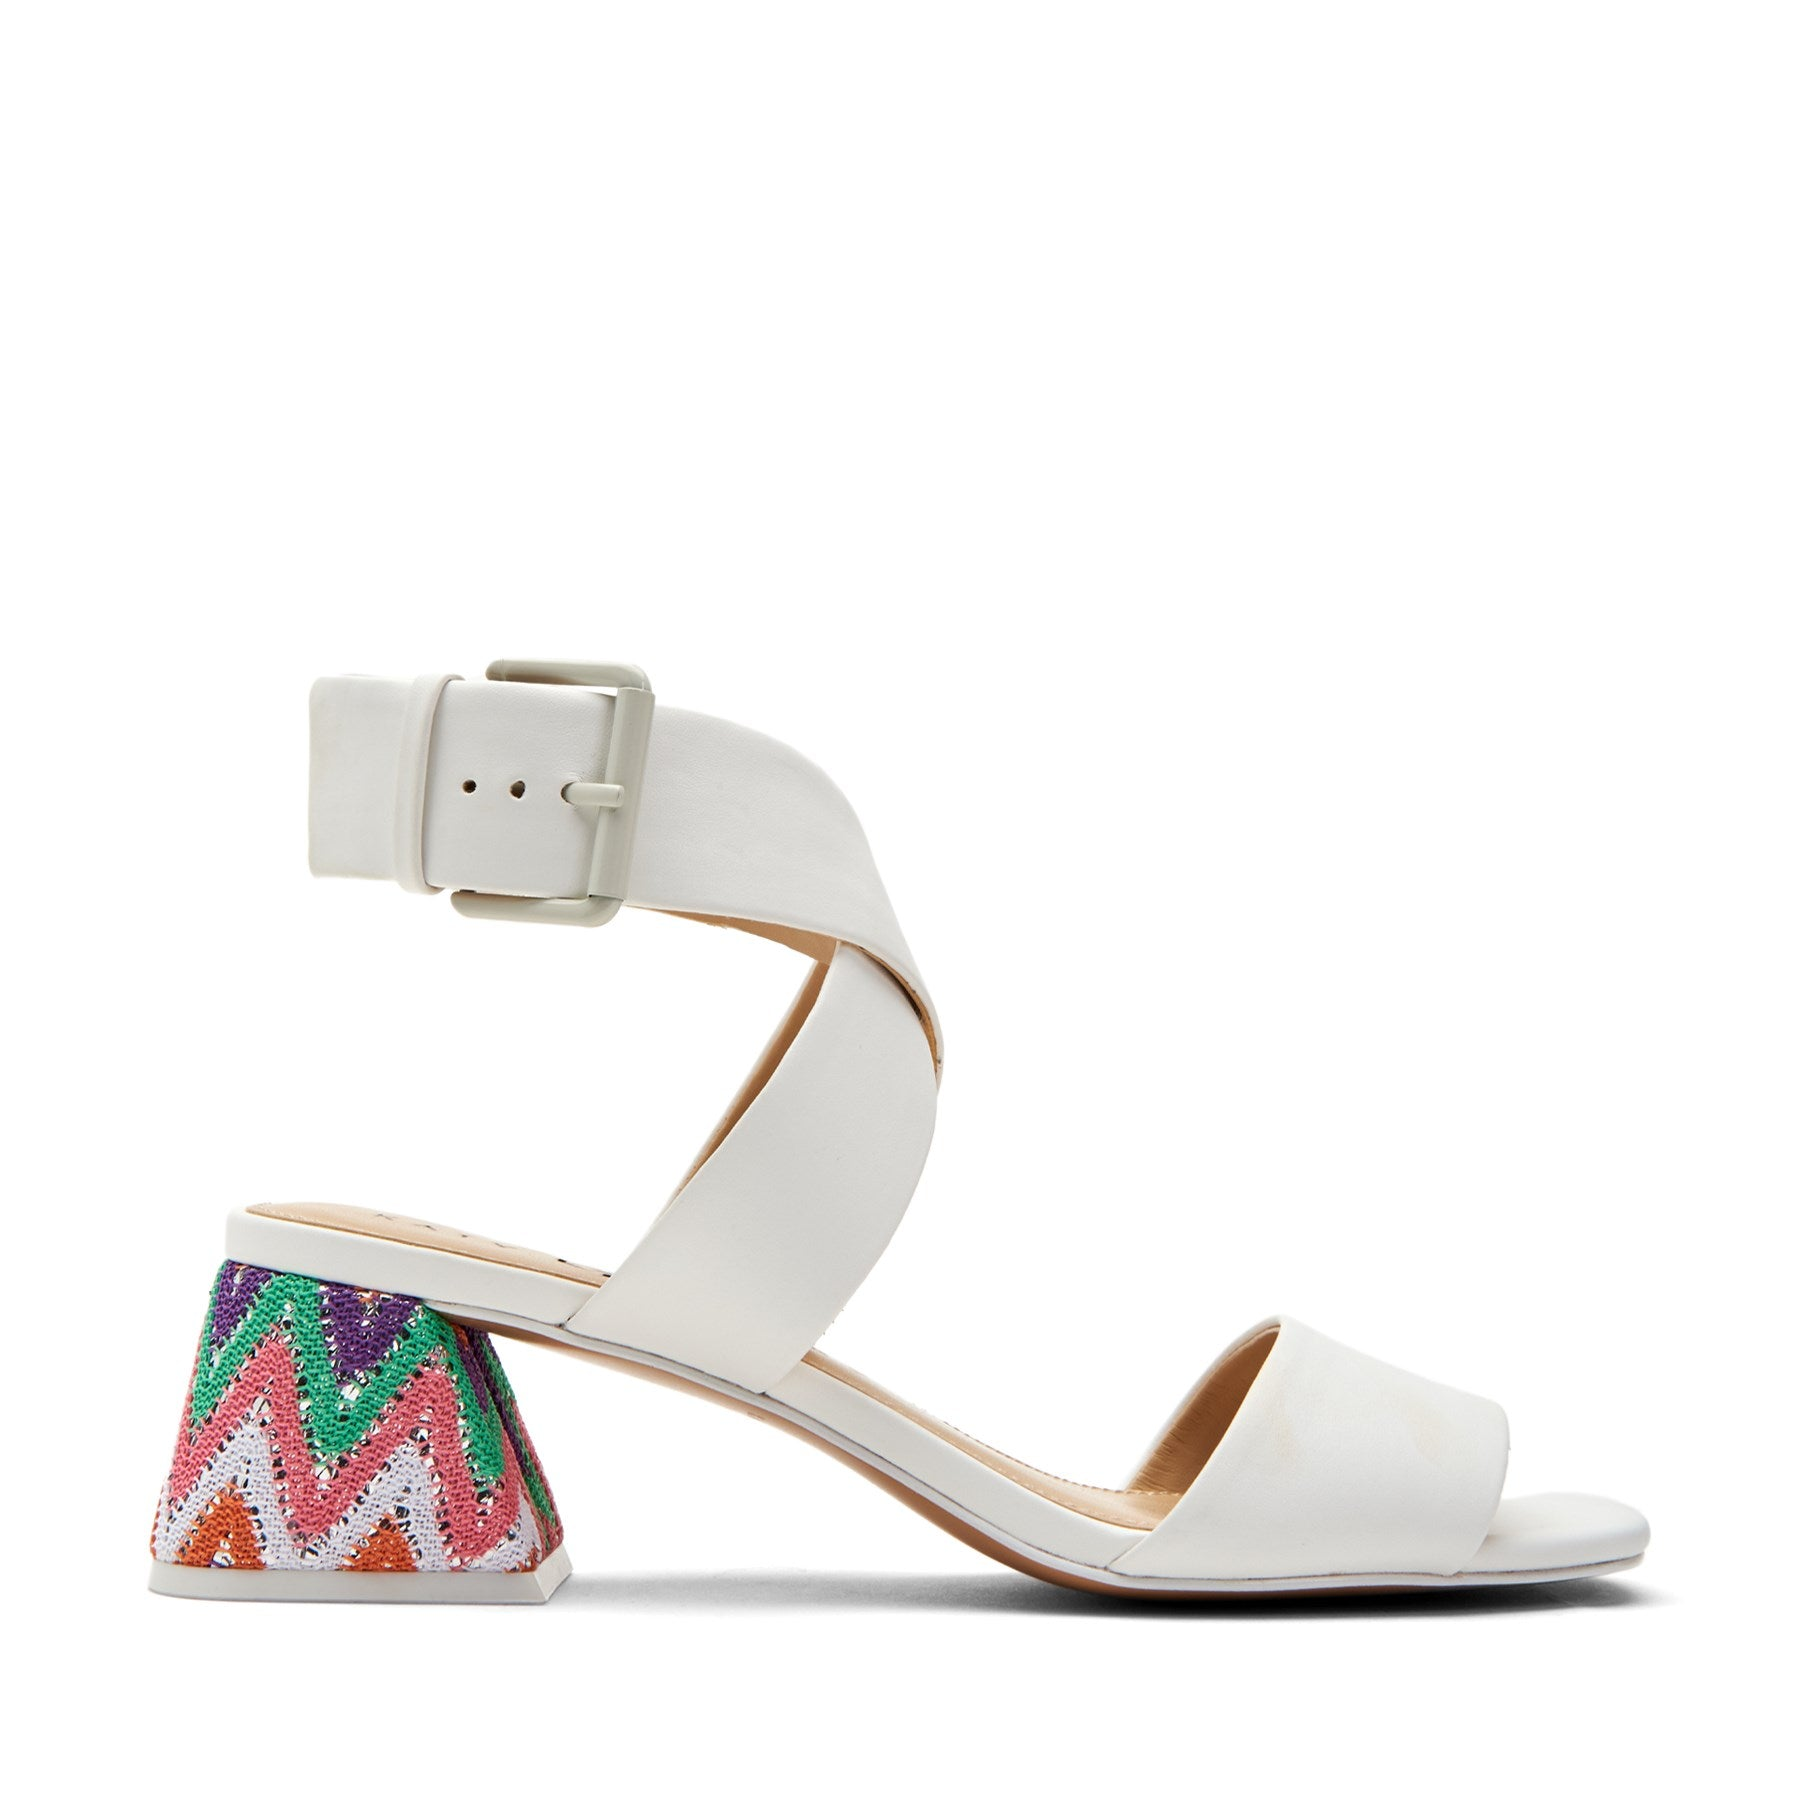 katy perry heeled sandal in white size 5.5 | the albee